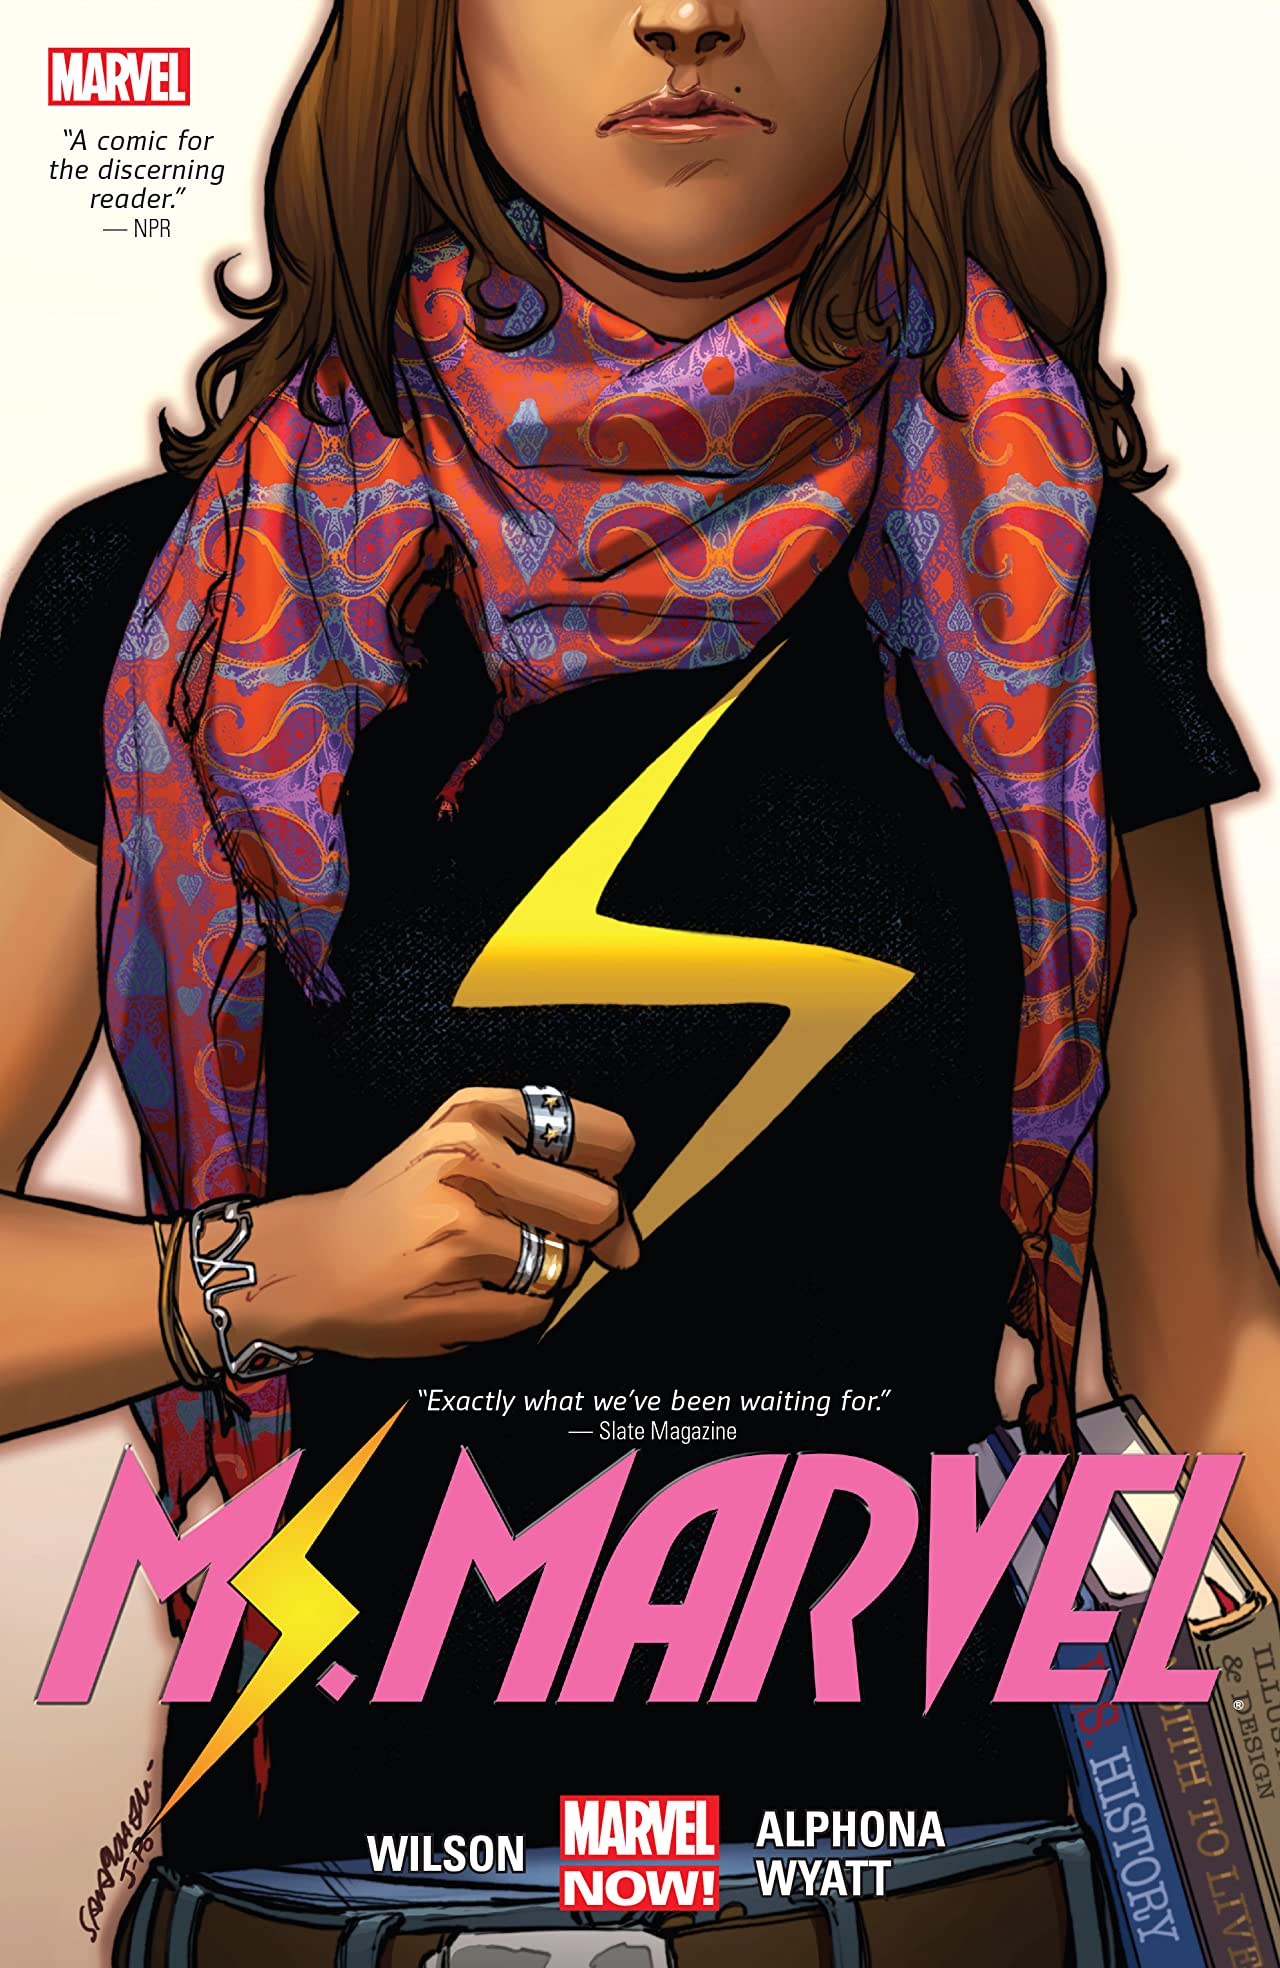 Ms. Marvel by G. Willow Wilson Vol. 1